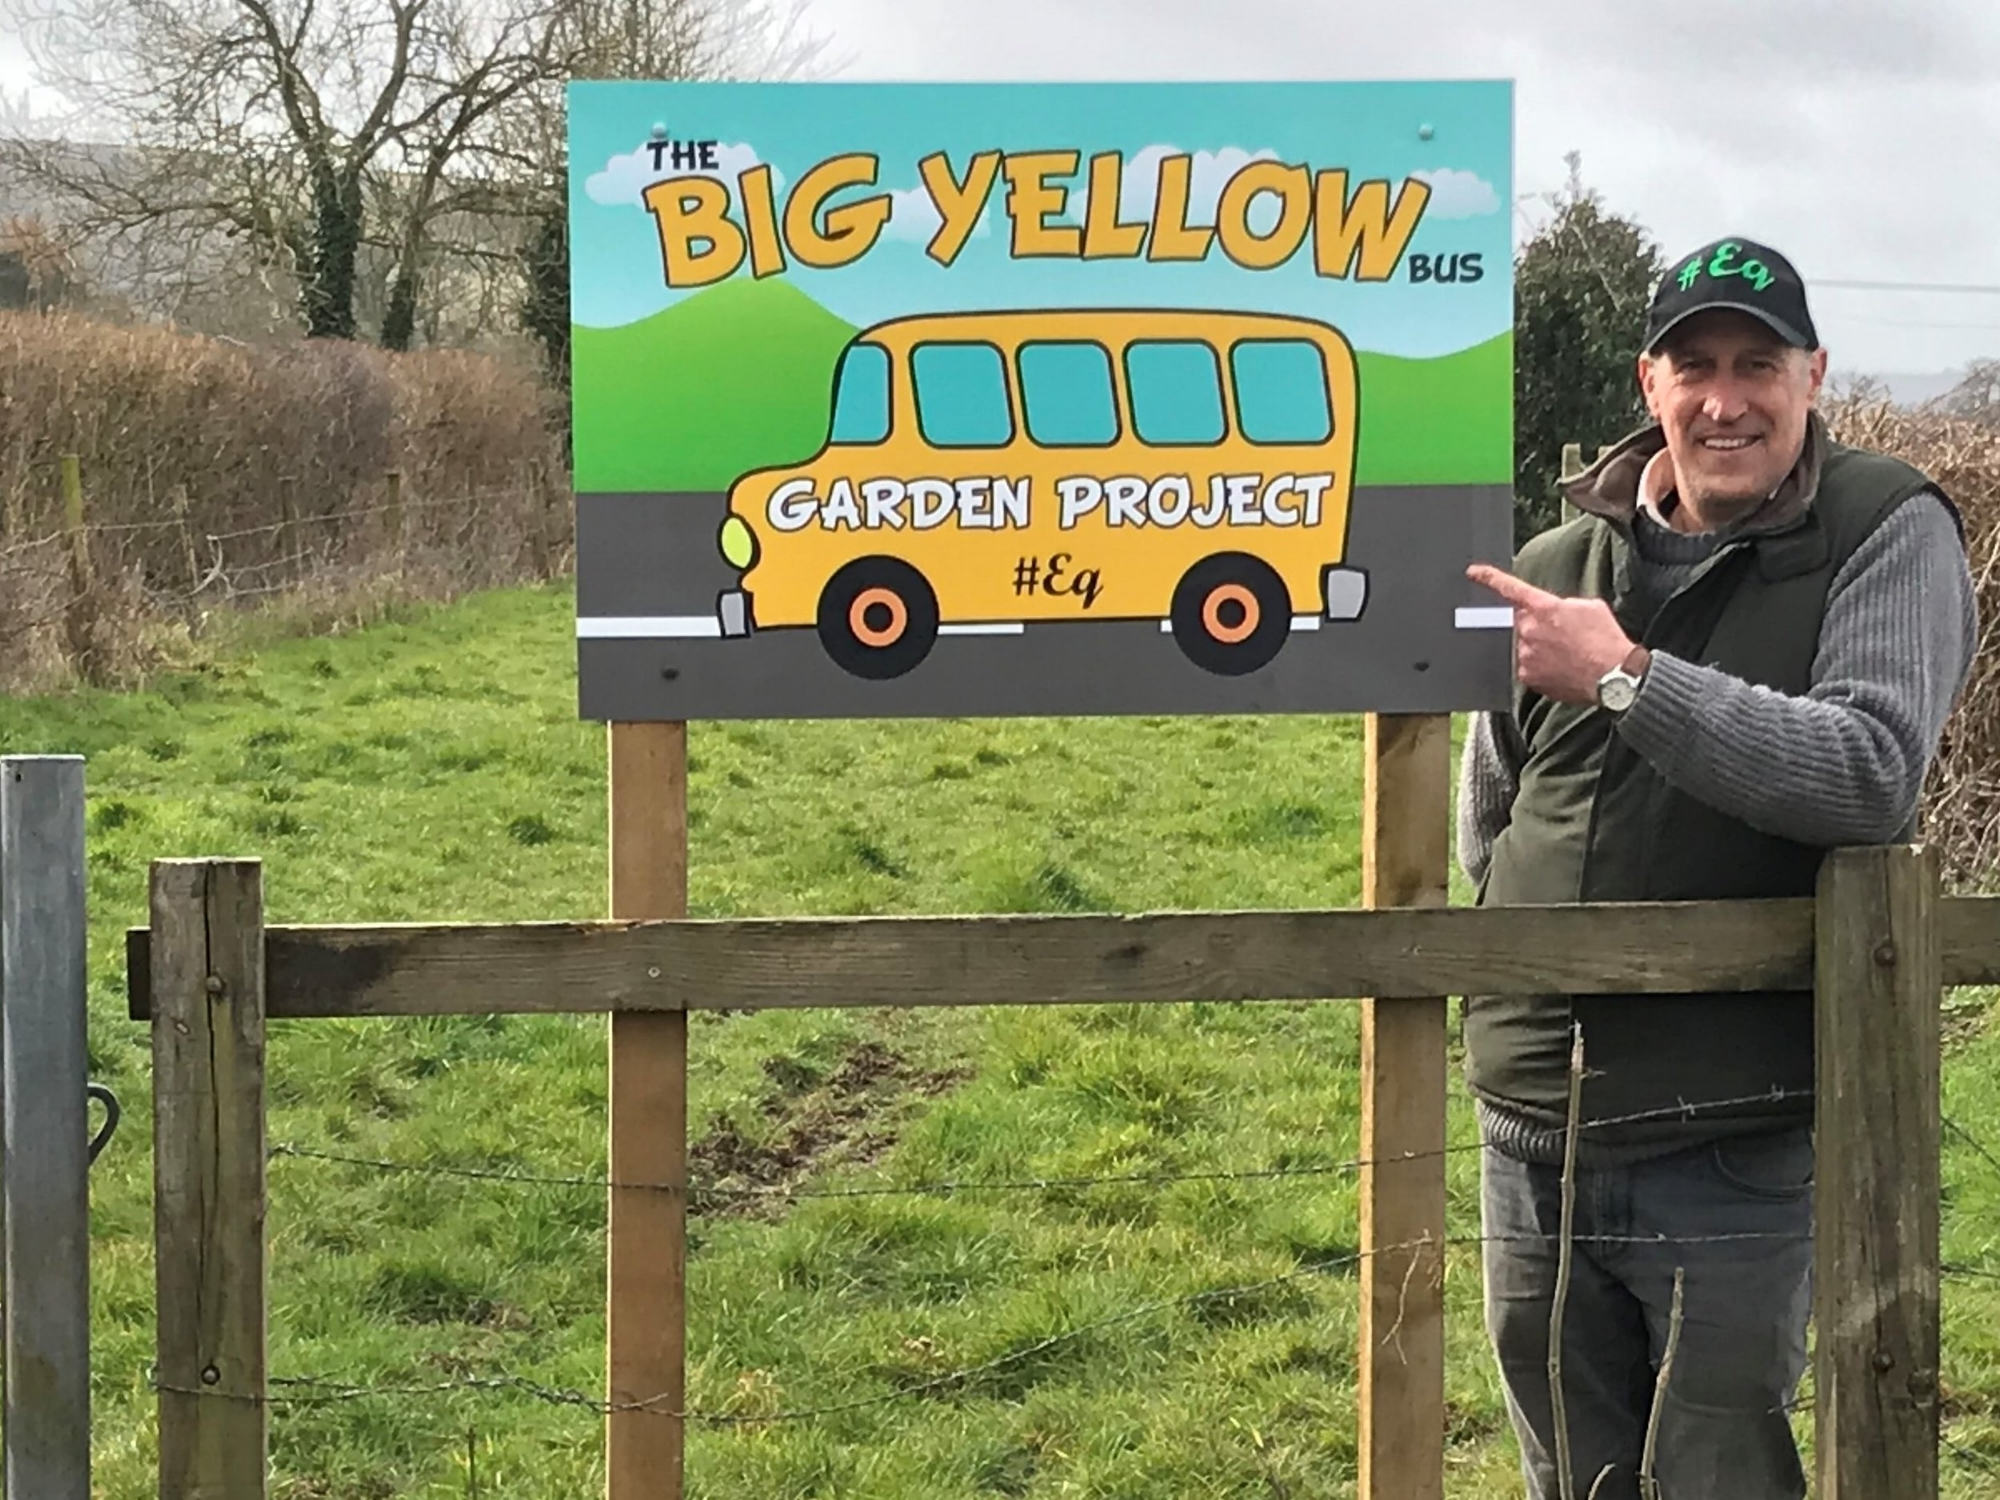 Paul Williams, eq director, pointing the way forward for our Garden Project.